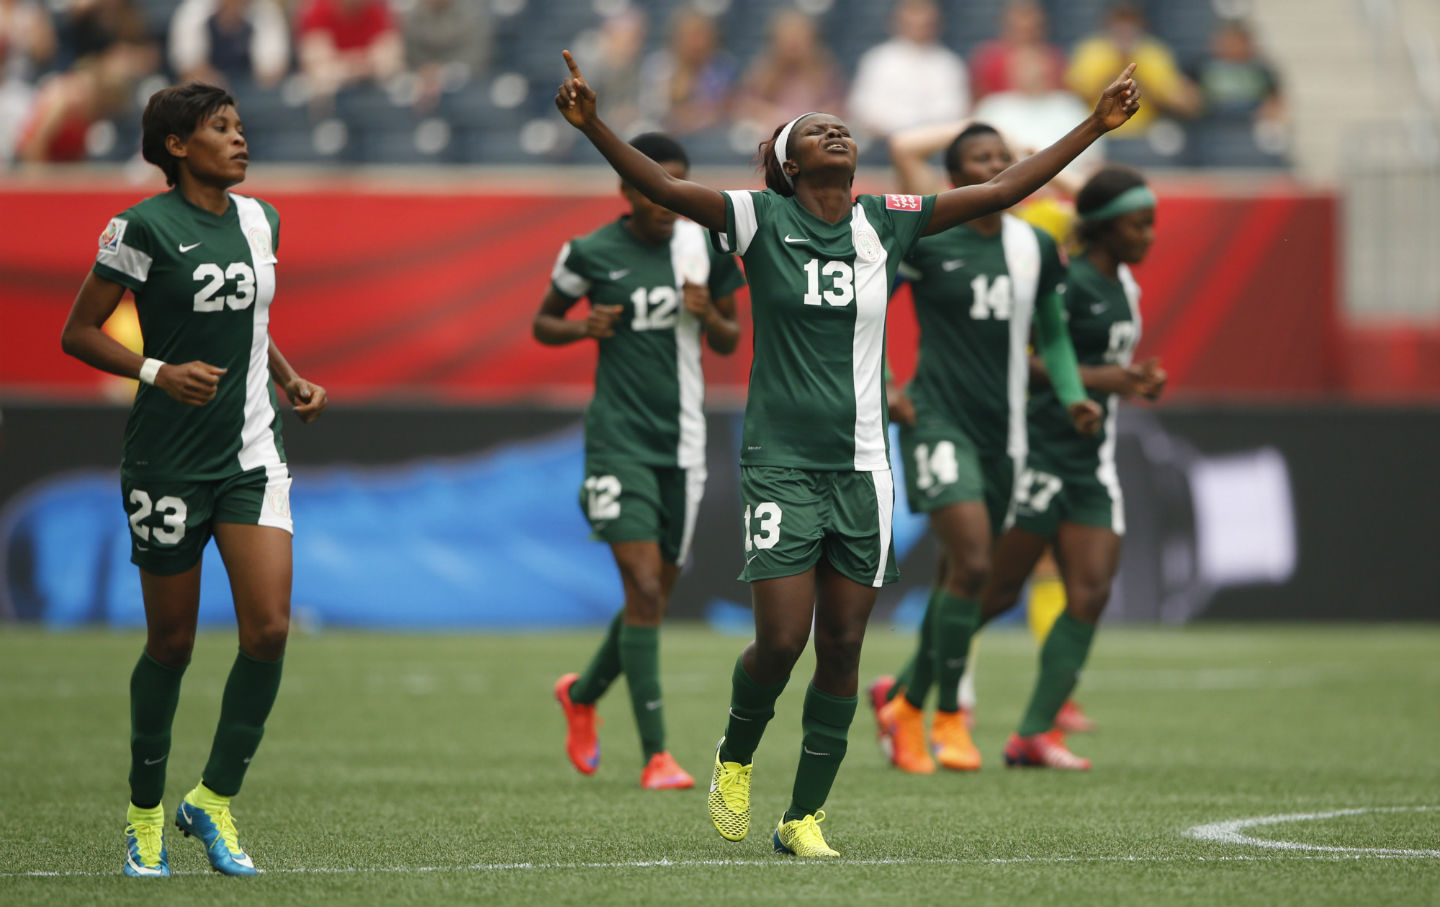 Nigeria, Sweden in 2015 Women's World Cup